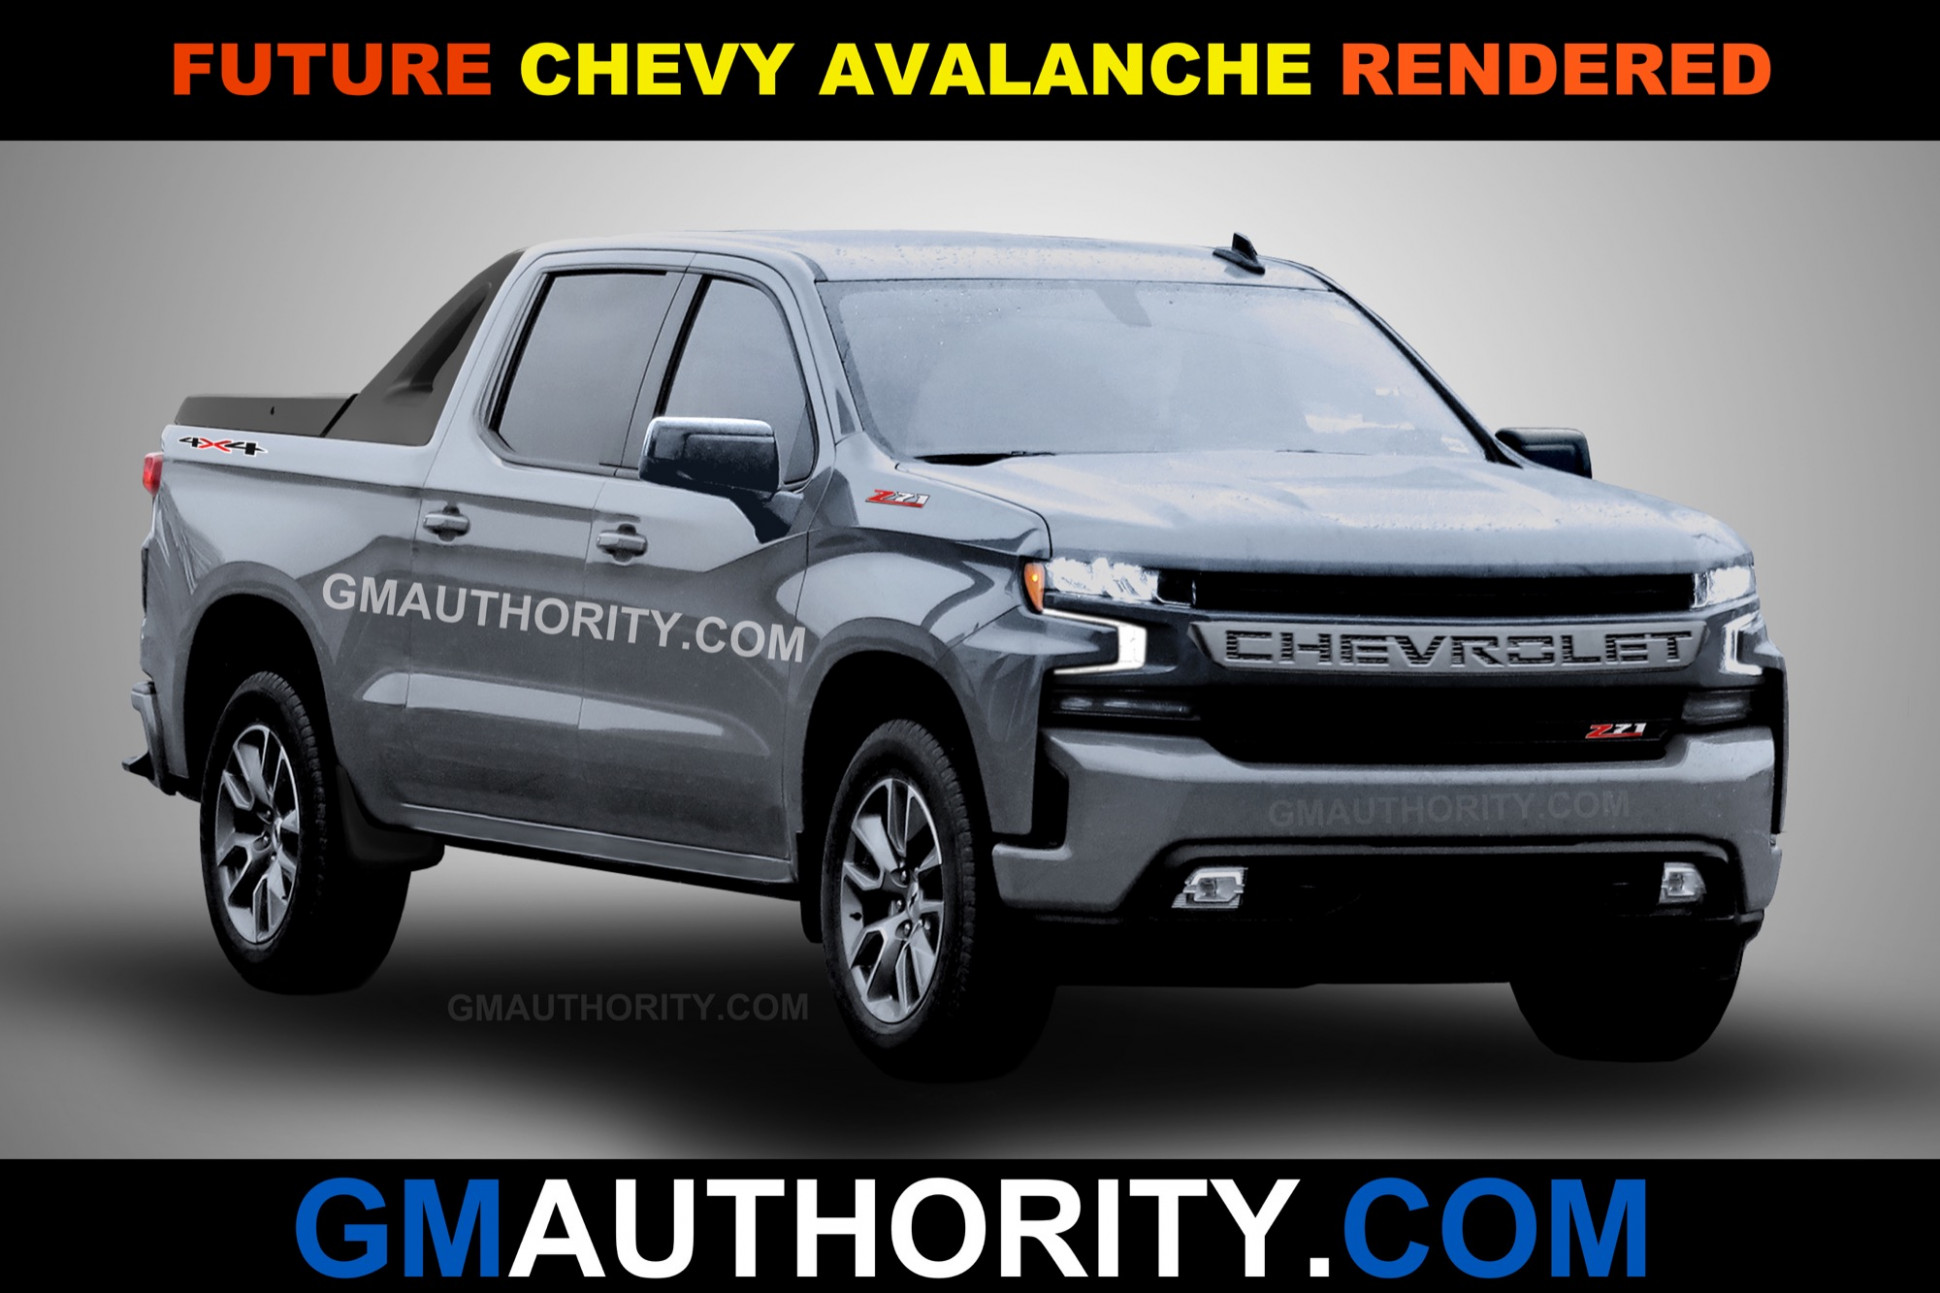 Photos Chevrolet Avalanche 2022